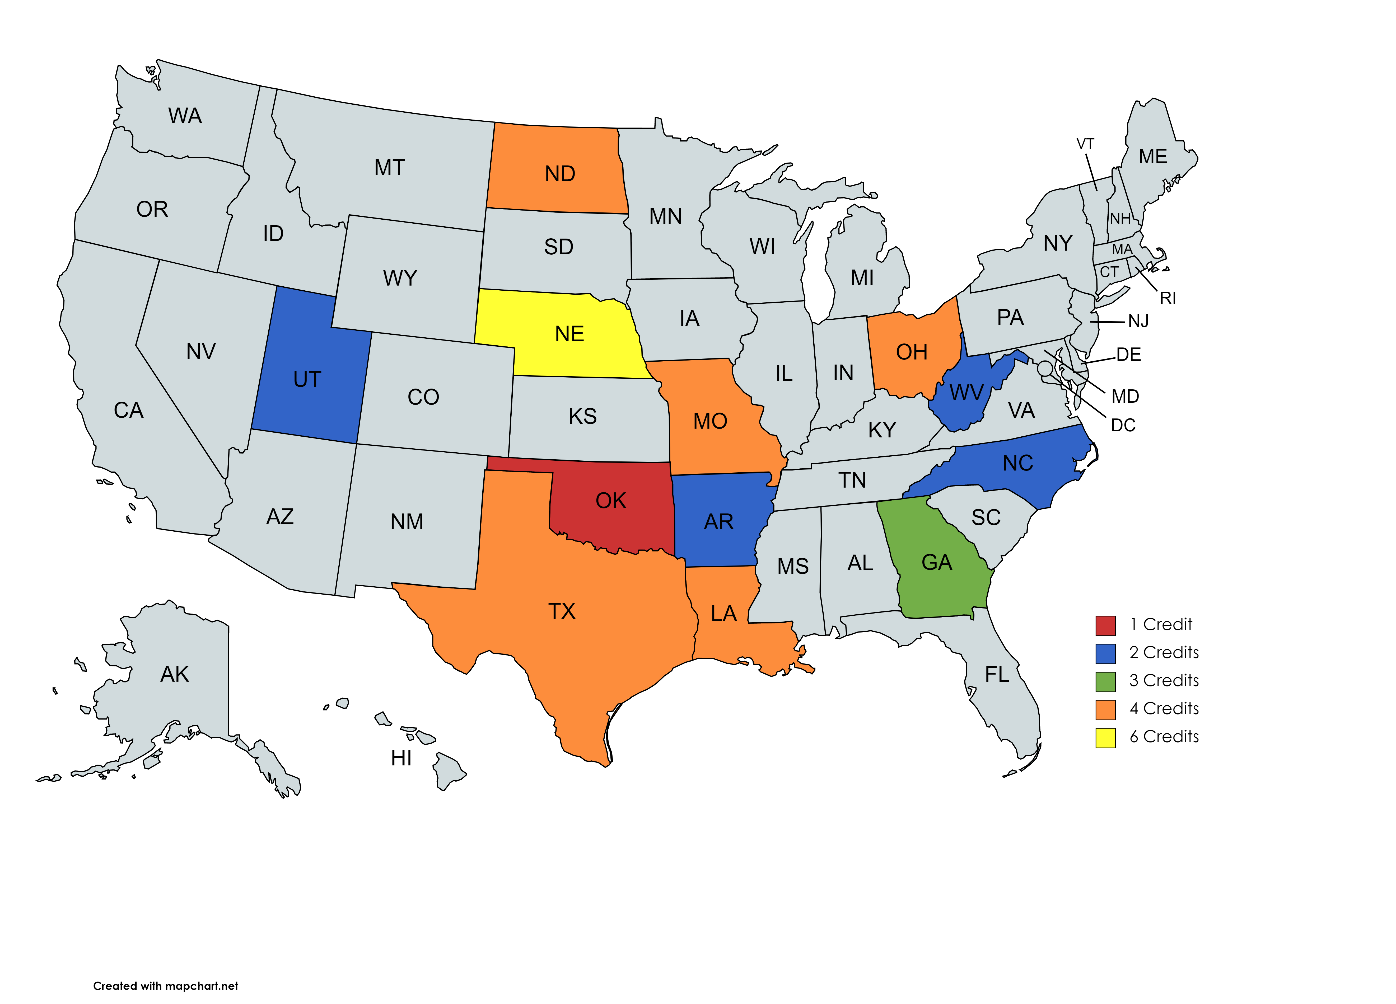 States Offering CE Credit